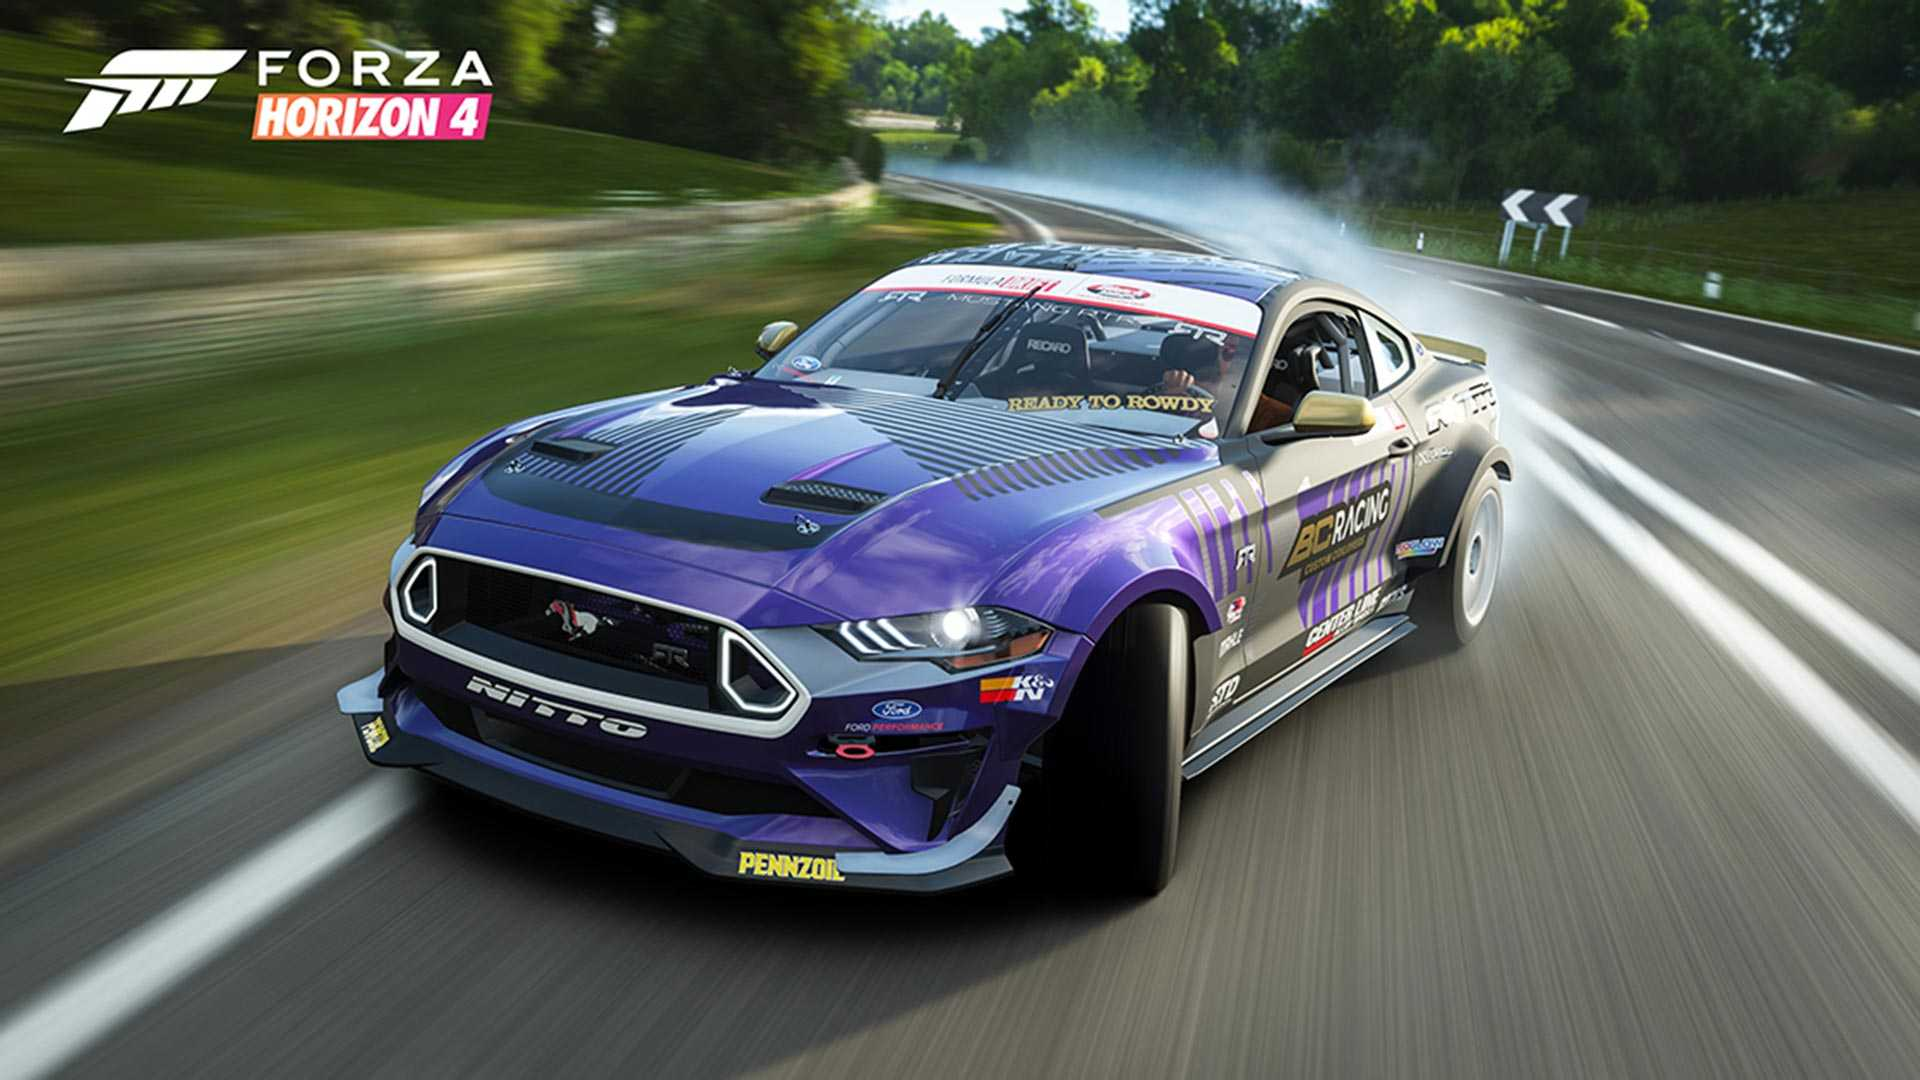 ford-mustang-drift-cars-forza-motorsport-7-and-forza-horizon-4